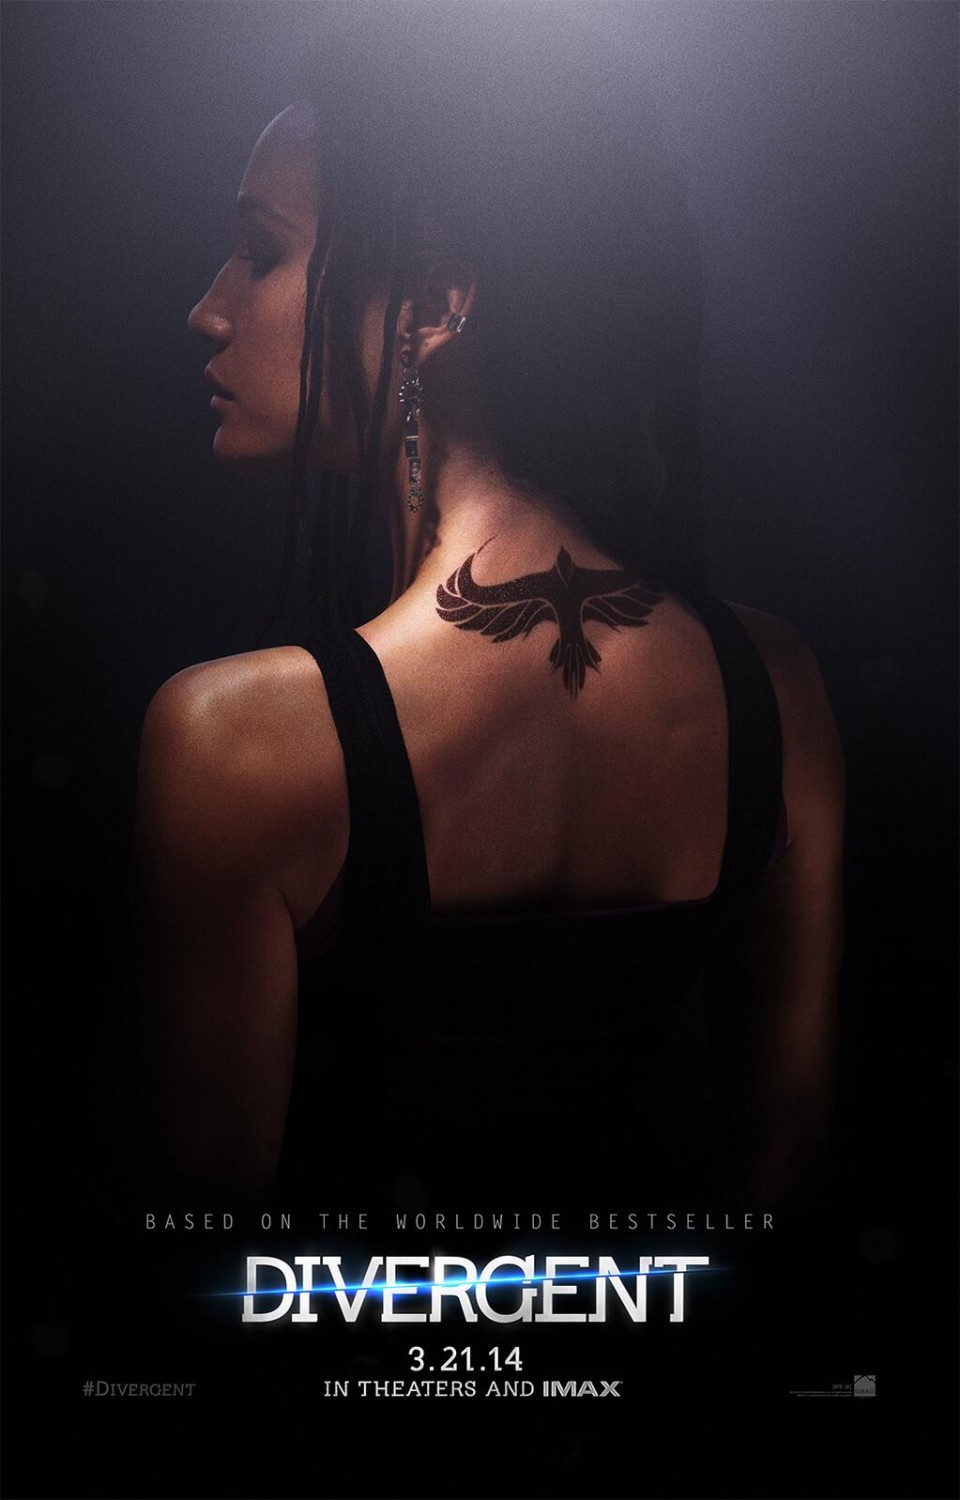 Divergent-Official Poster Banner PROMO POSTER XLG-05NOVEMBRO2013